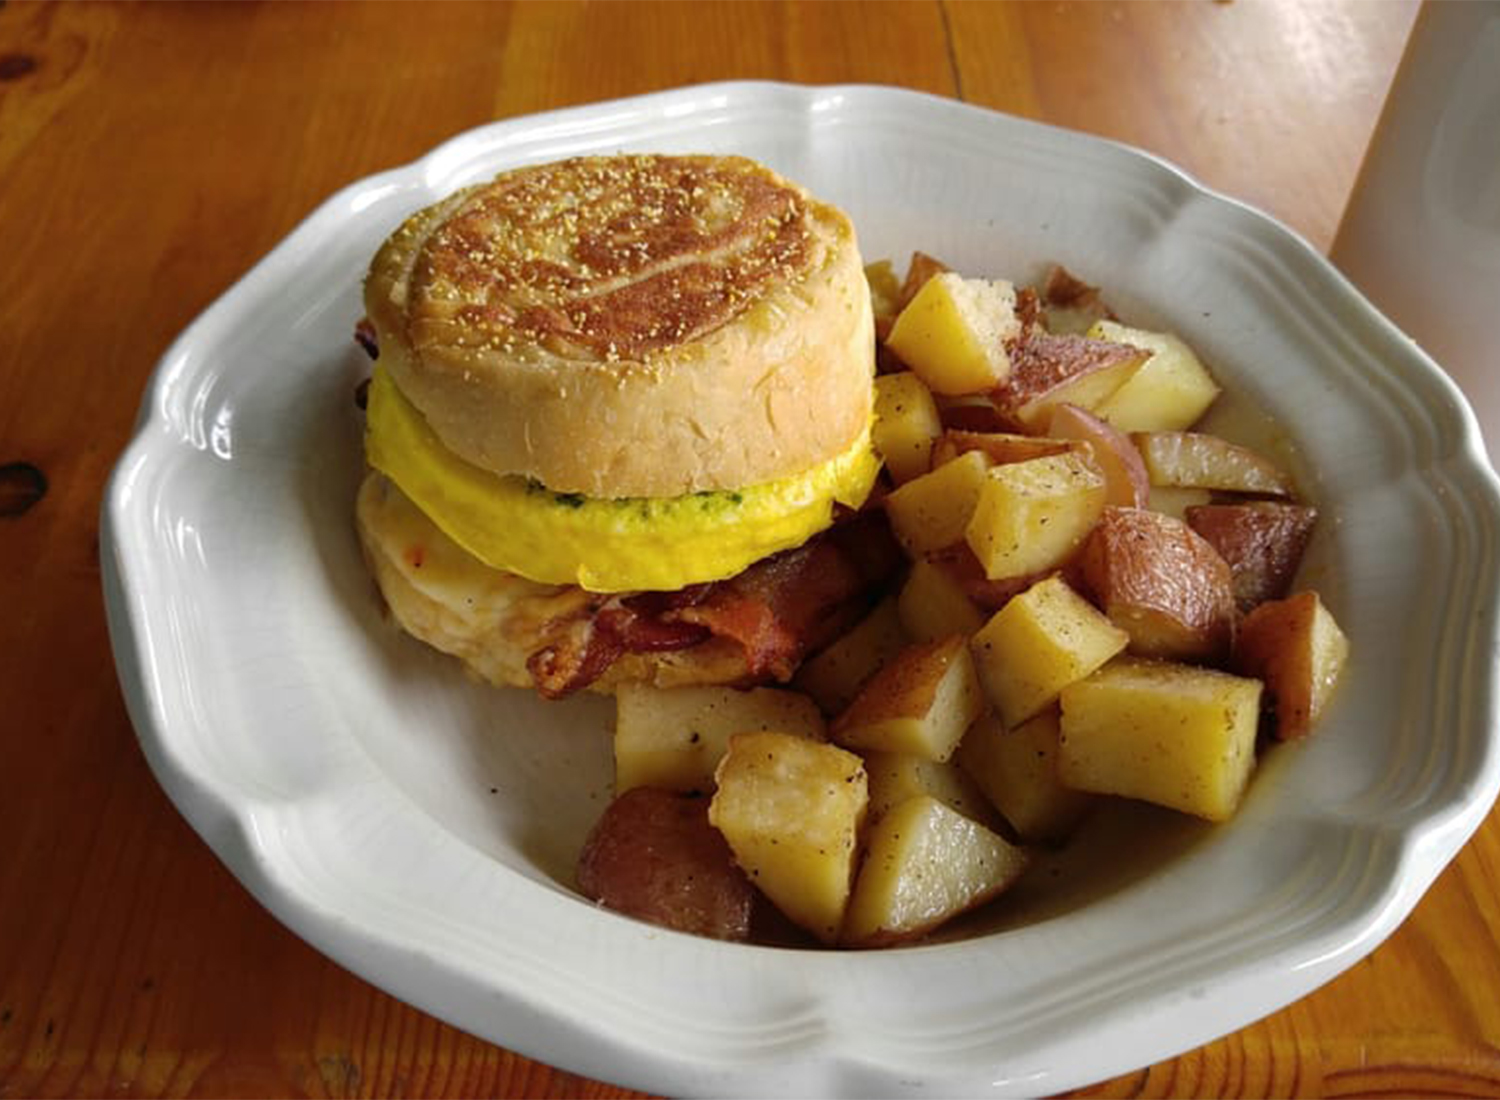 Breakfast muffin from Criminal Baking Co. in Santa Rosa, Courtesy YELP